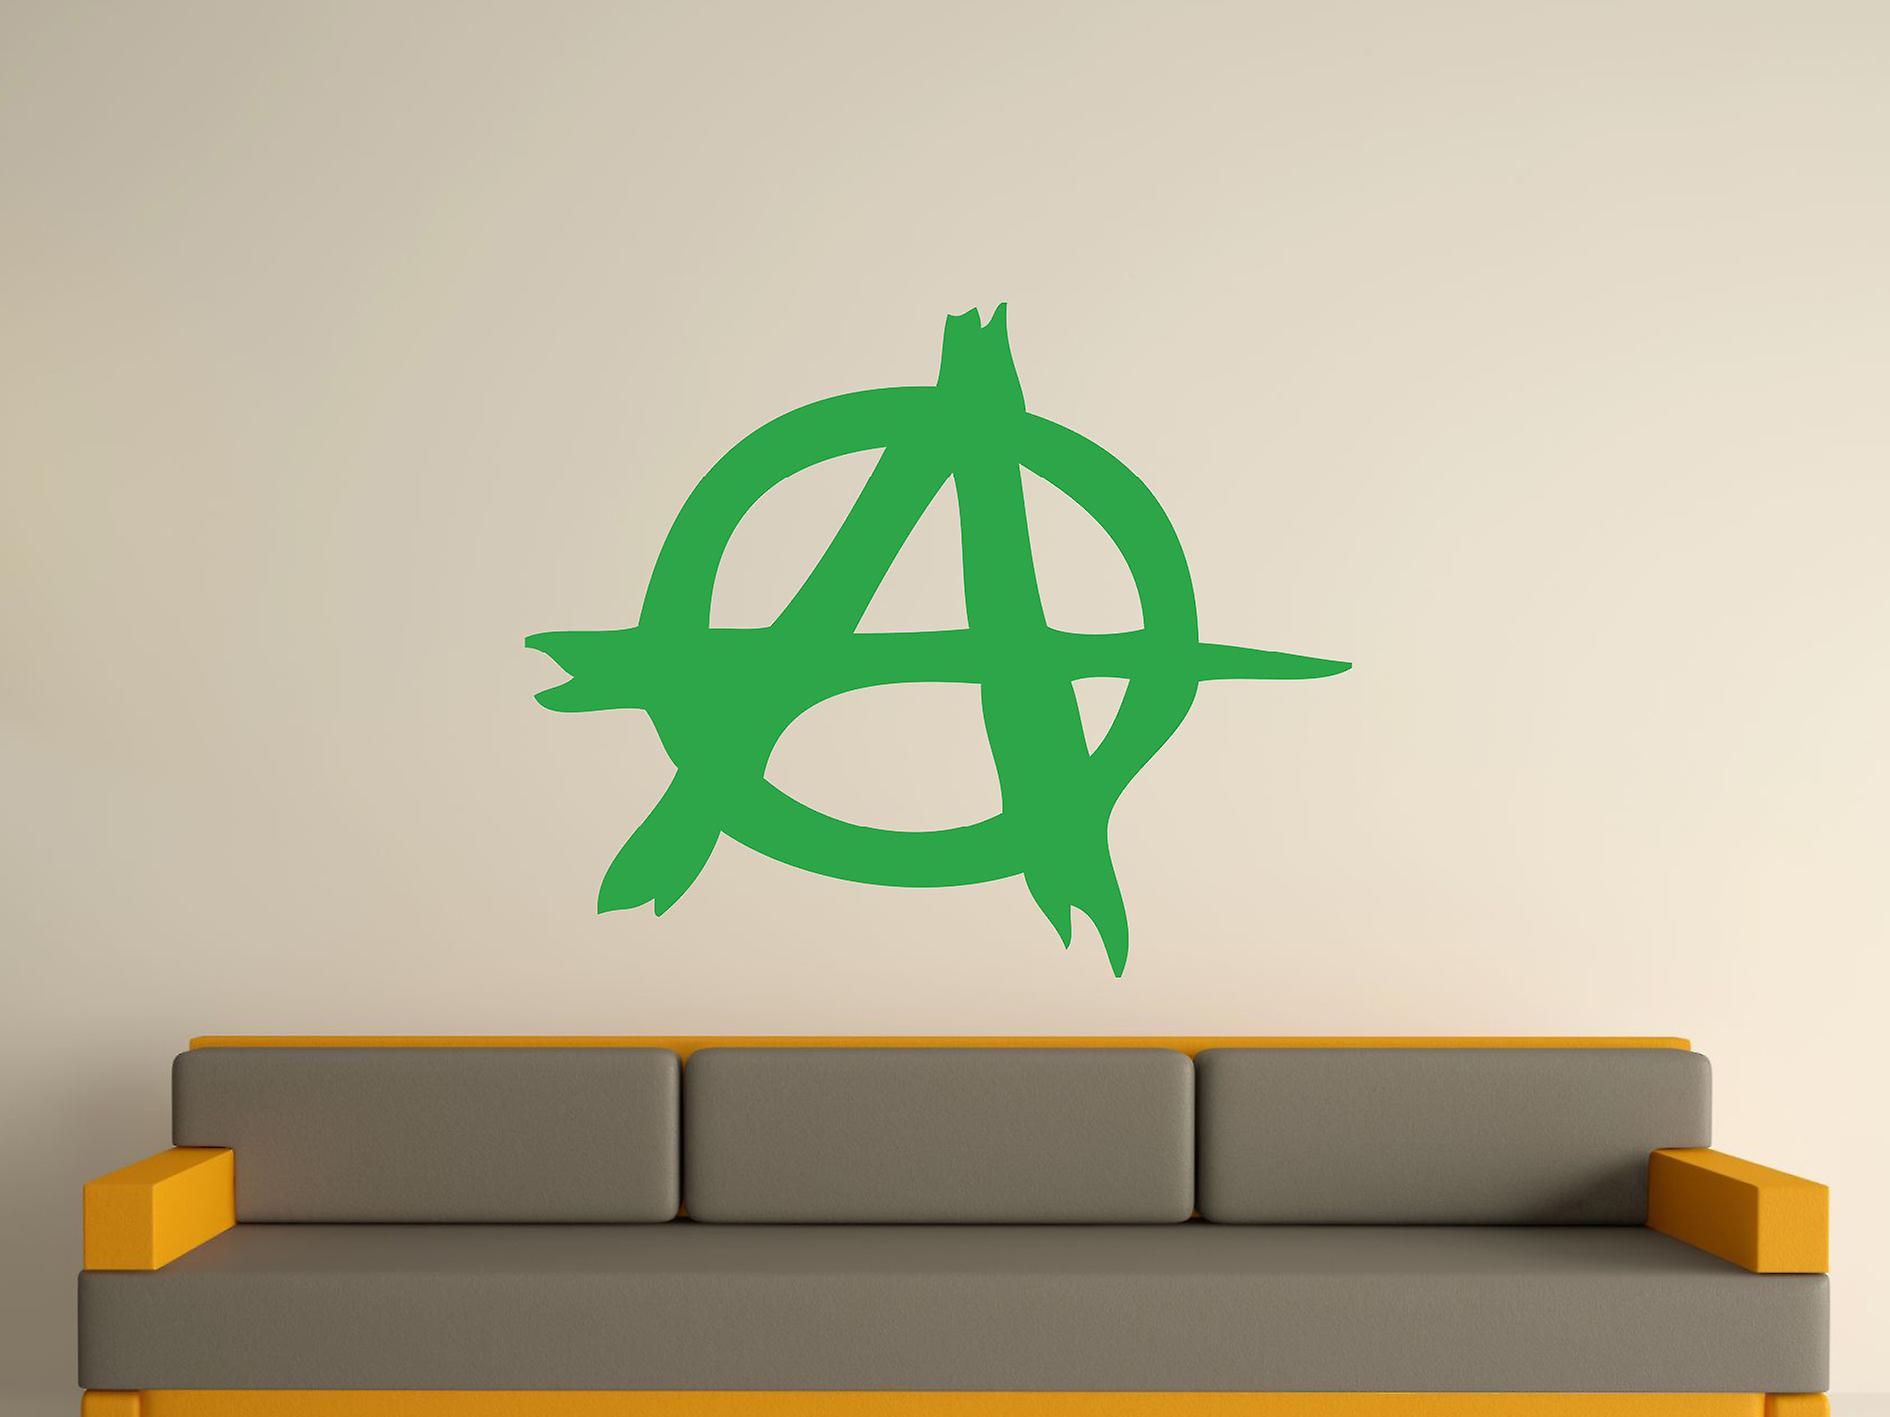 Anarchy symbool Wall Art Sticker - groen